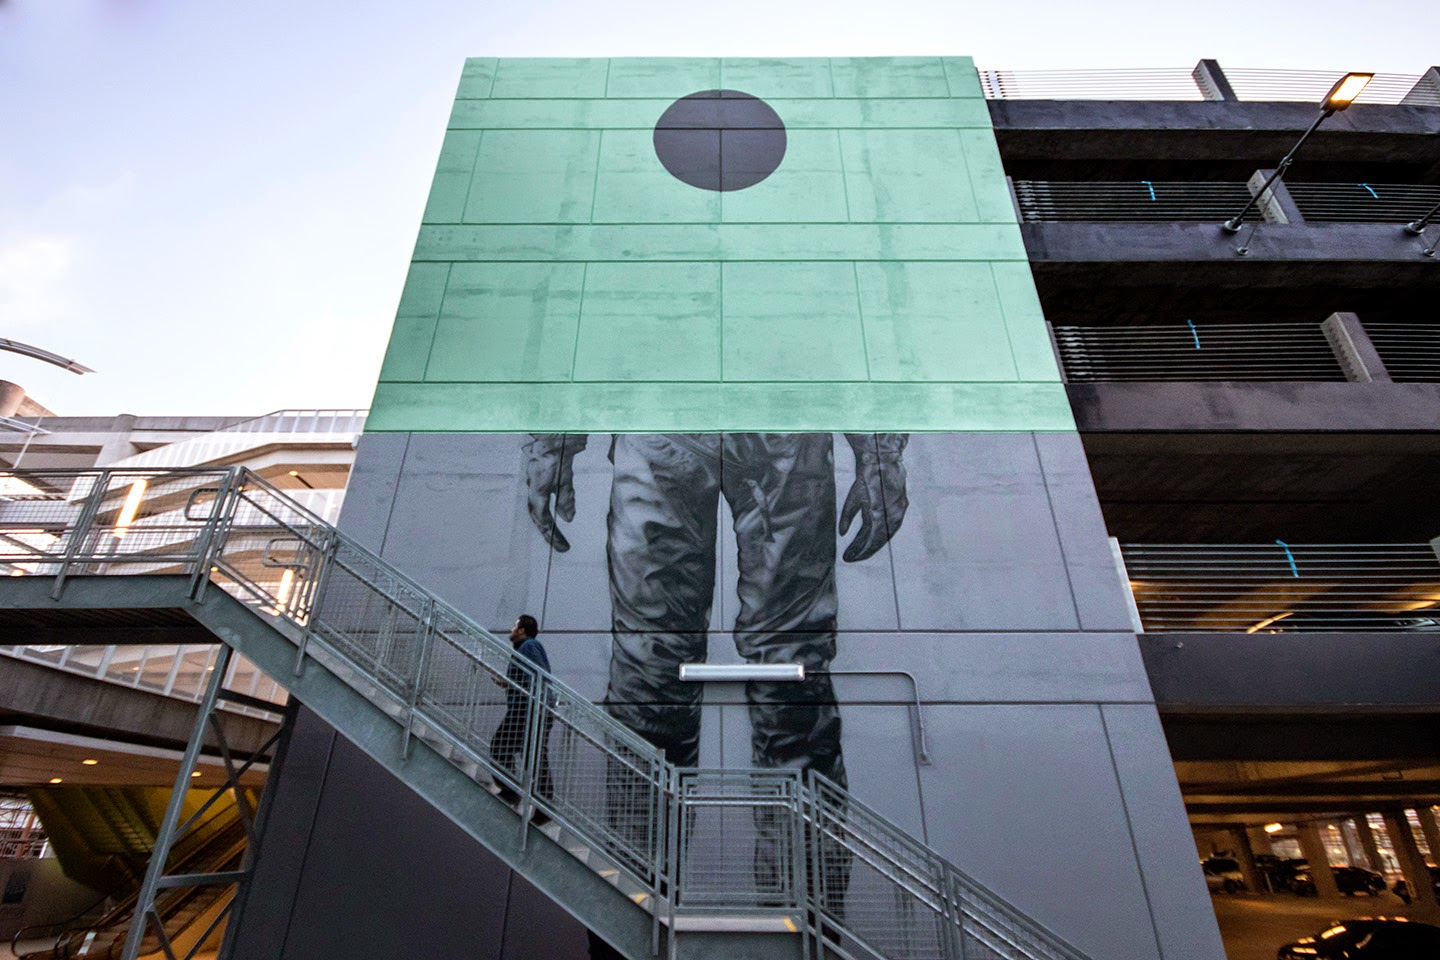 Our friends from Cyrcle have been rather busy with a brand new series of massive pieces in Playa Vista, Los Angeles.